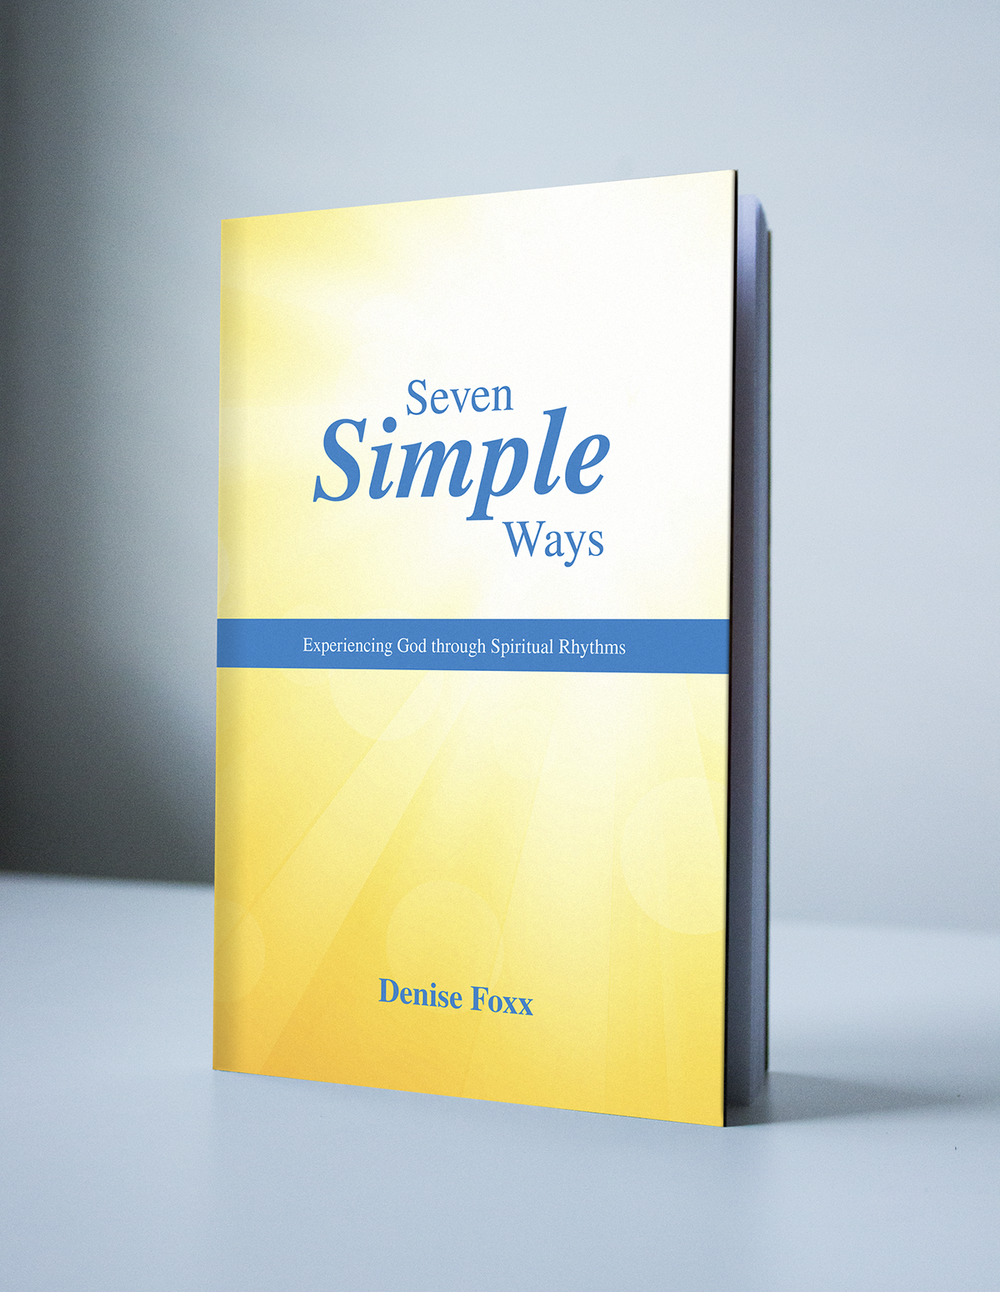 SEVEN SIMPLE WAYS - DENISE FOXX